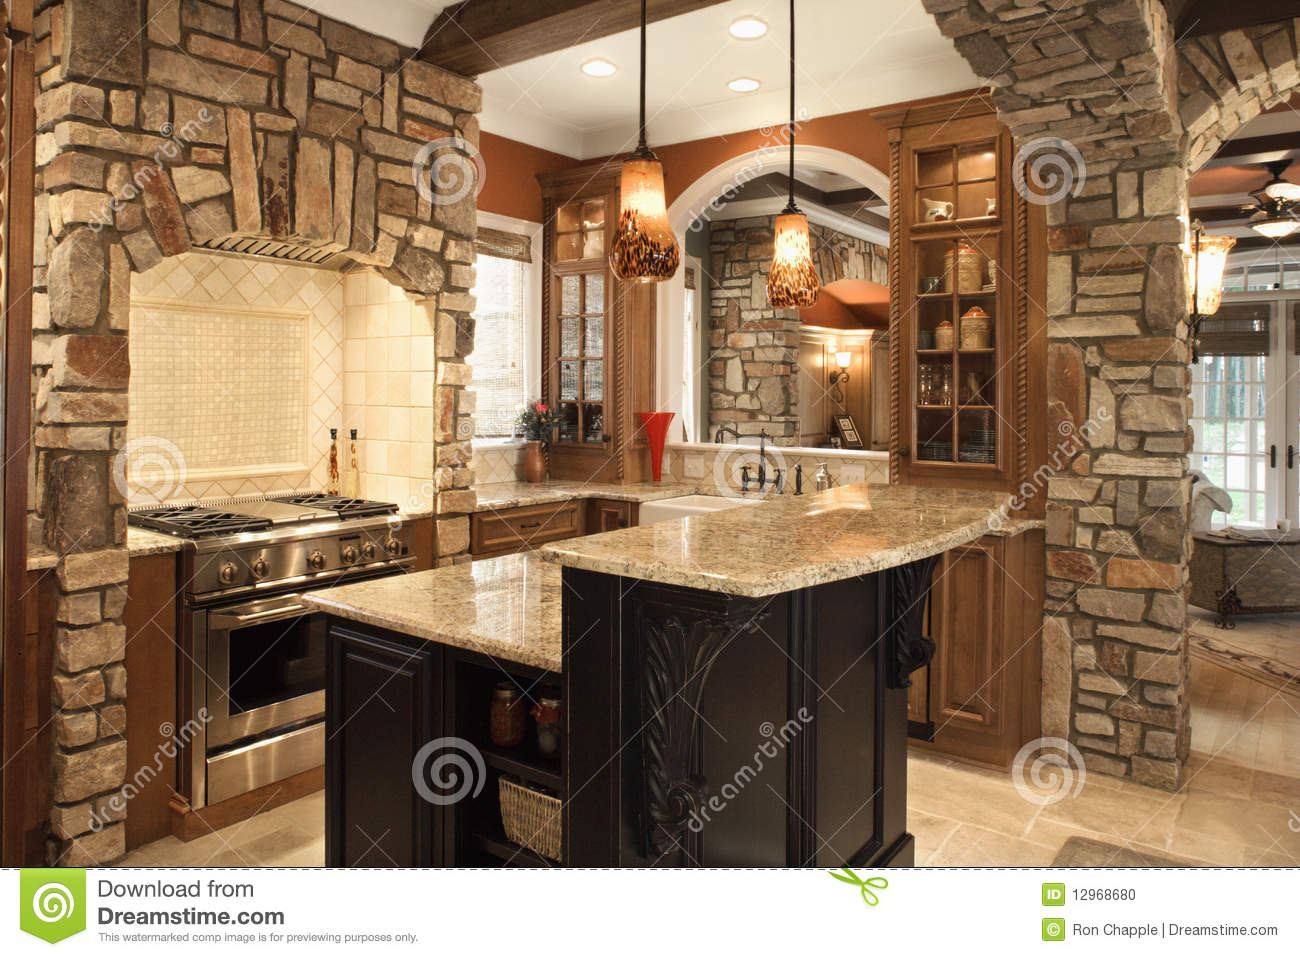 Cuisine Pierre Et Bois Kitchen Interior With Stone Accents In Affluent Ho Stock Photo